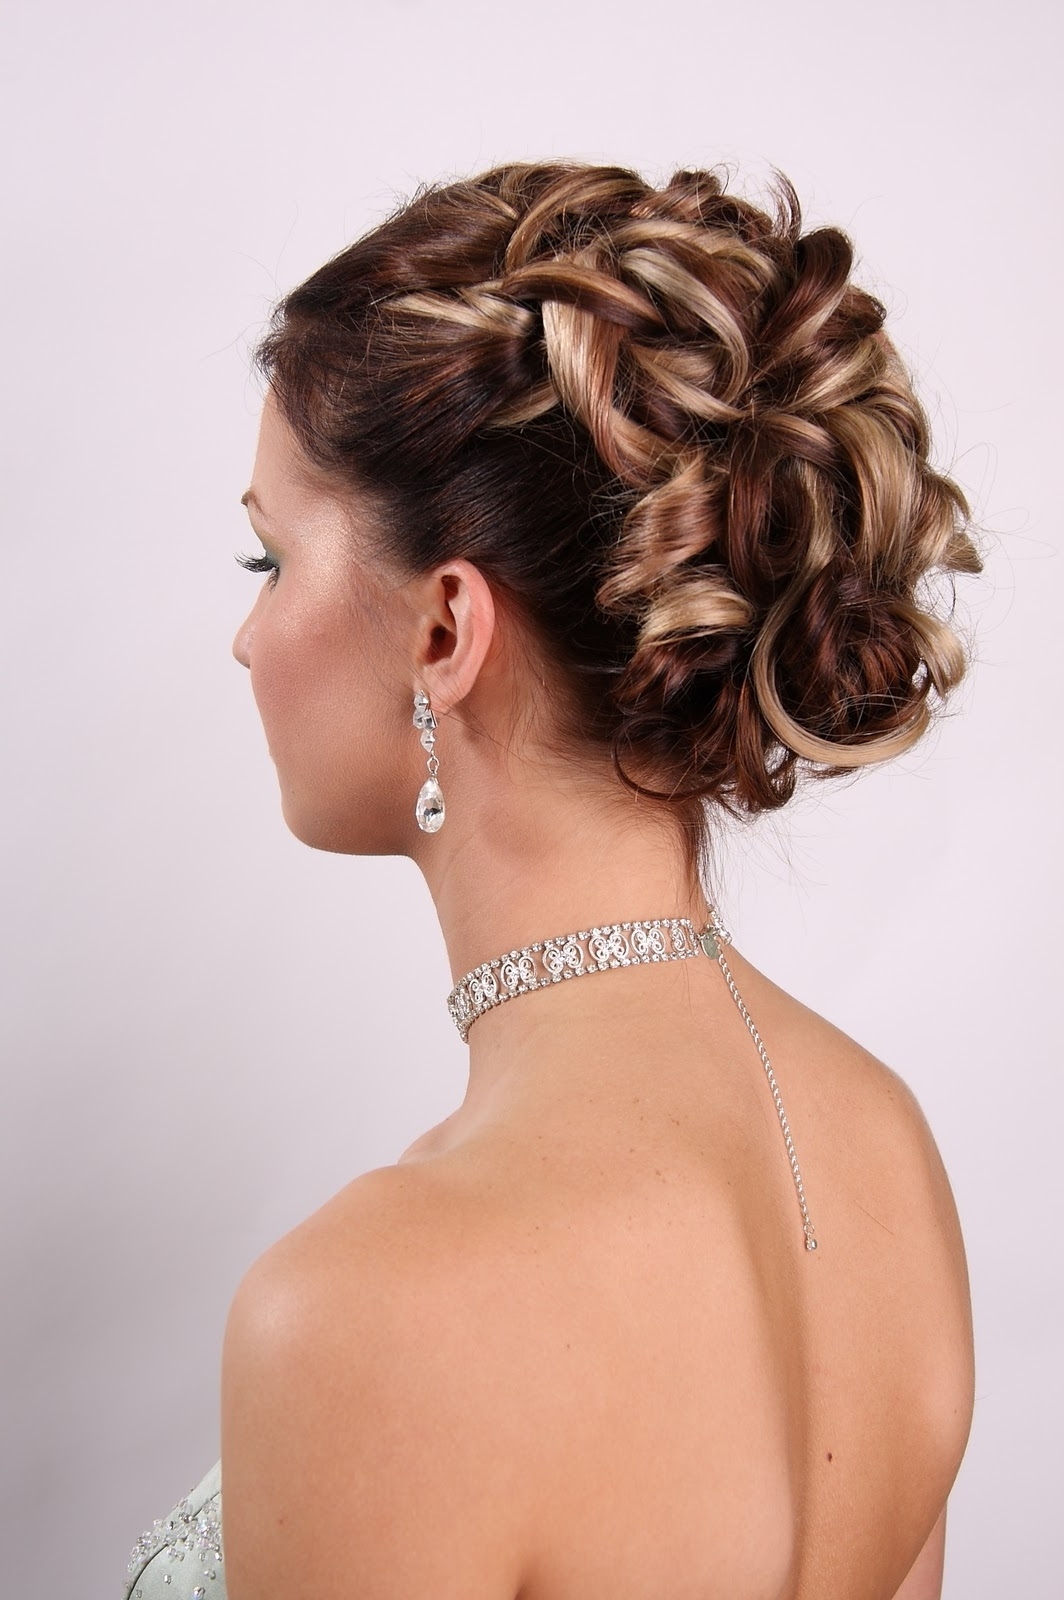 Short Hair Wedding Updos – Hairstyle For Women & Man Pertaining To Bridesmaid Hairstyles Updos For Short Hair (View 2 of 15)